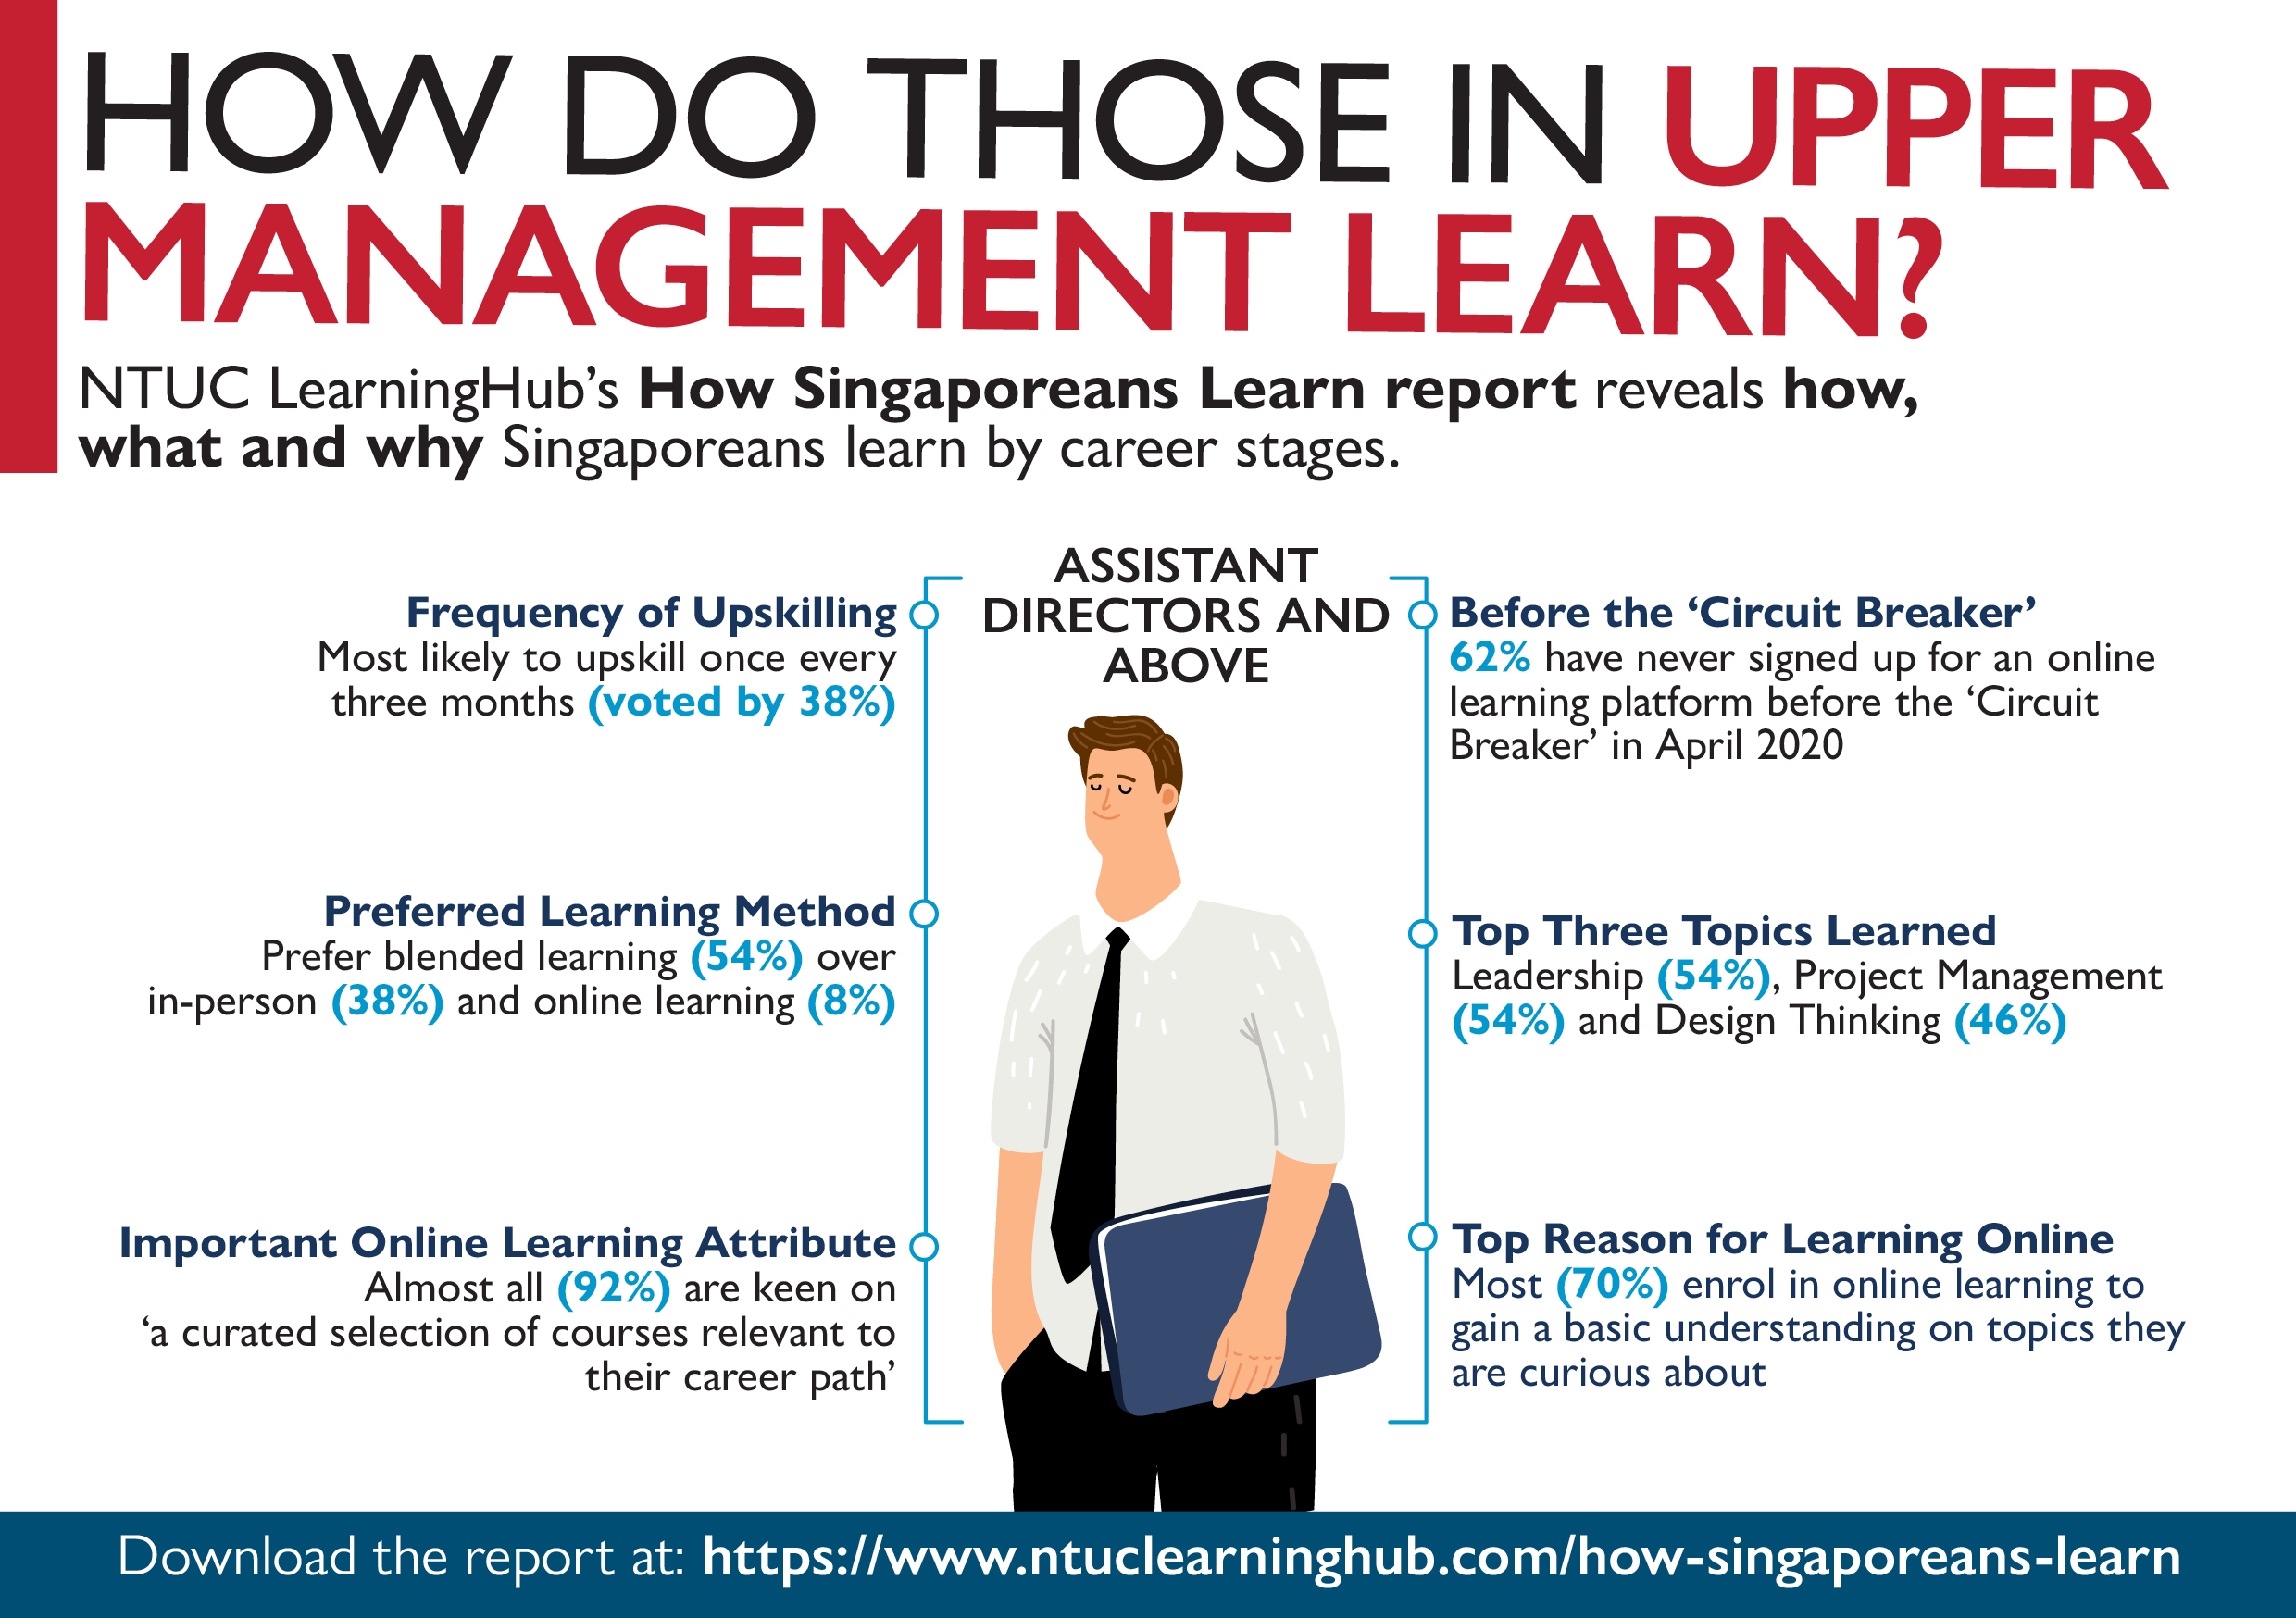 Those in Upper Management Are Least Likely to Learn Online; Upskilling Should Be Led from the Top, Says NTUC LearningHub